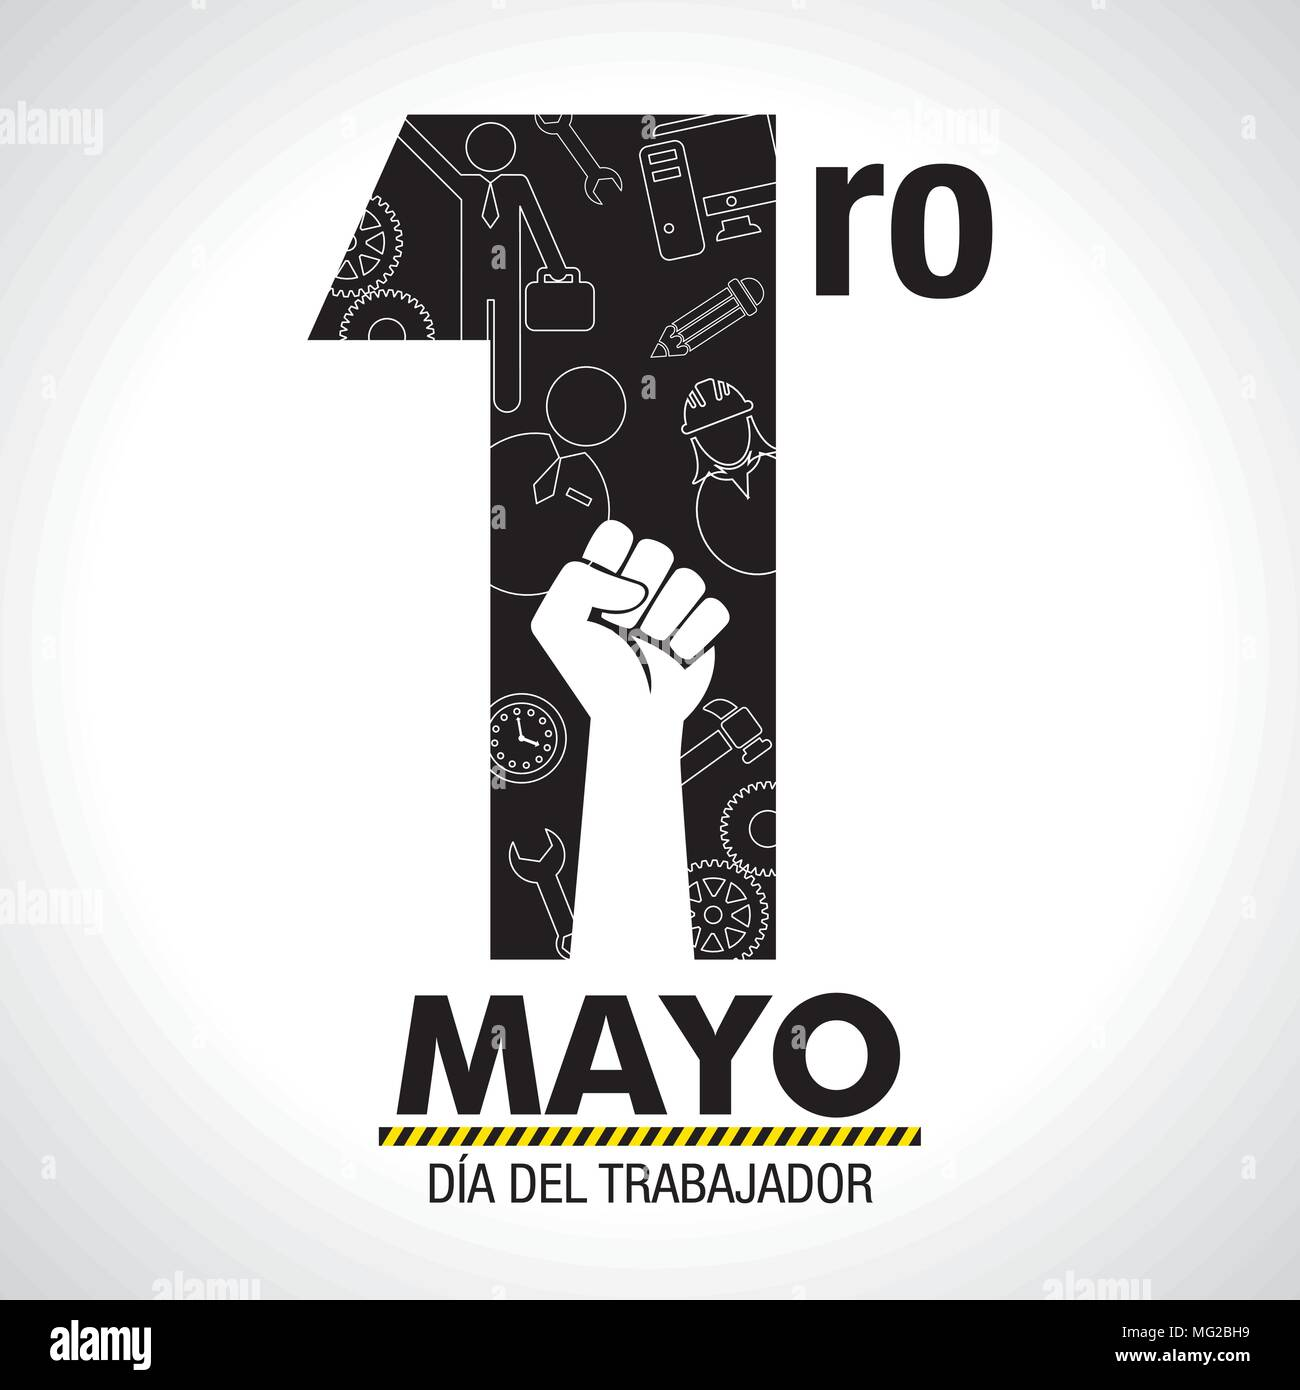 Dia del trabajador international workers day in spanish language dia del trabajador international workers day in spanish language greeting card icons of woman man hammer fist inside number one in black m4hsunfo